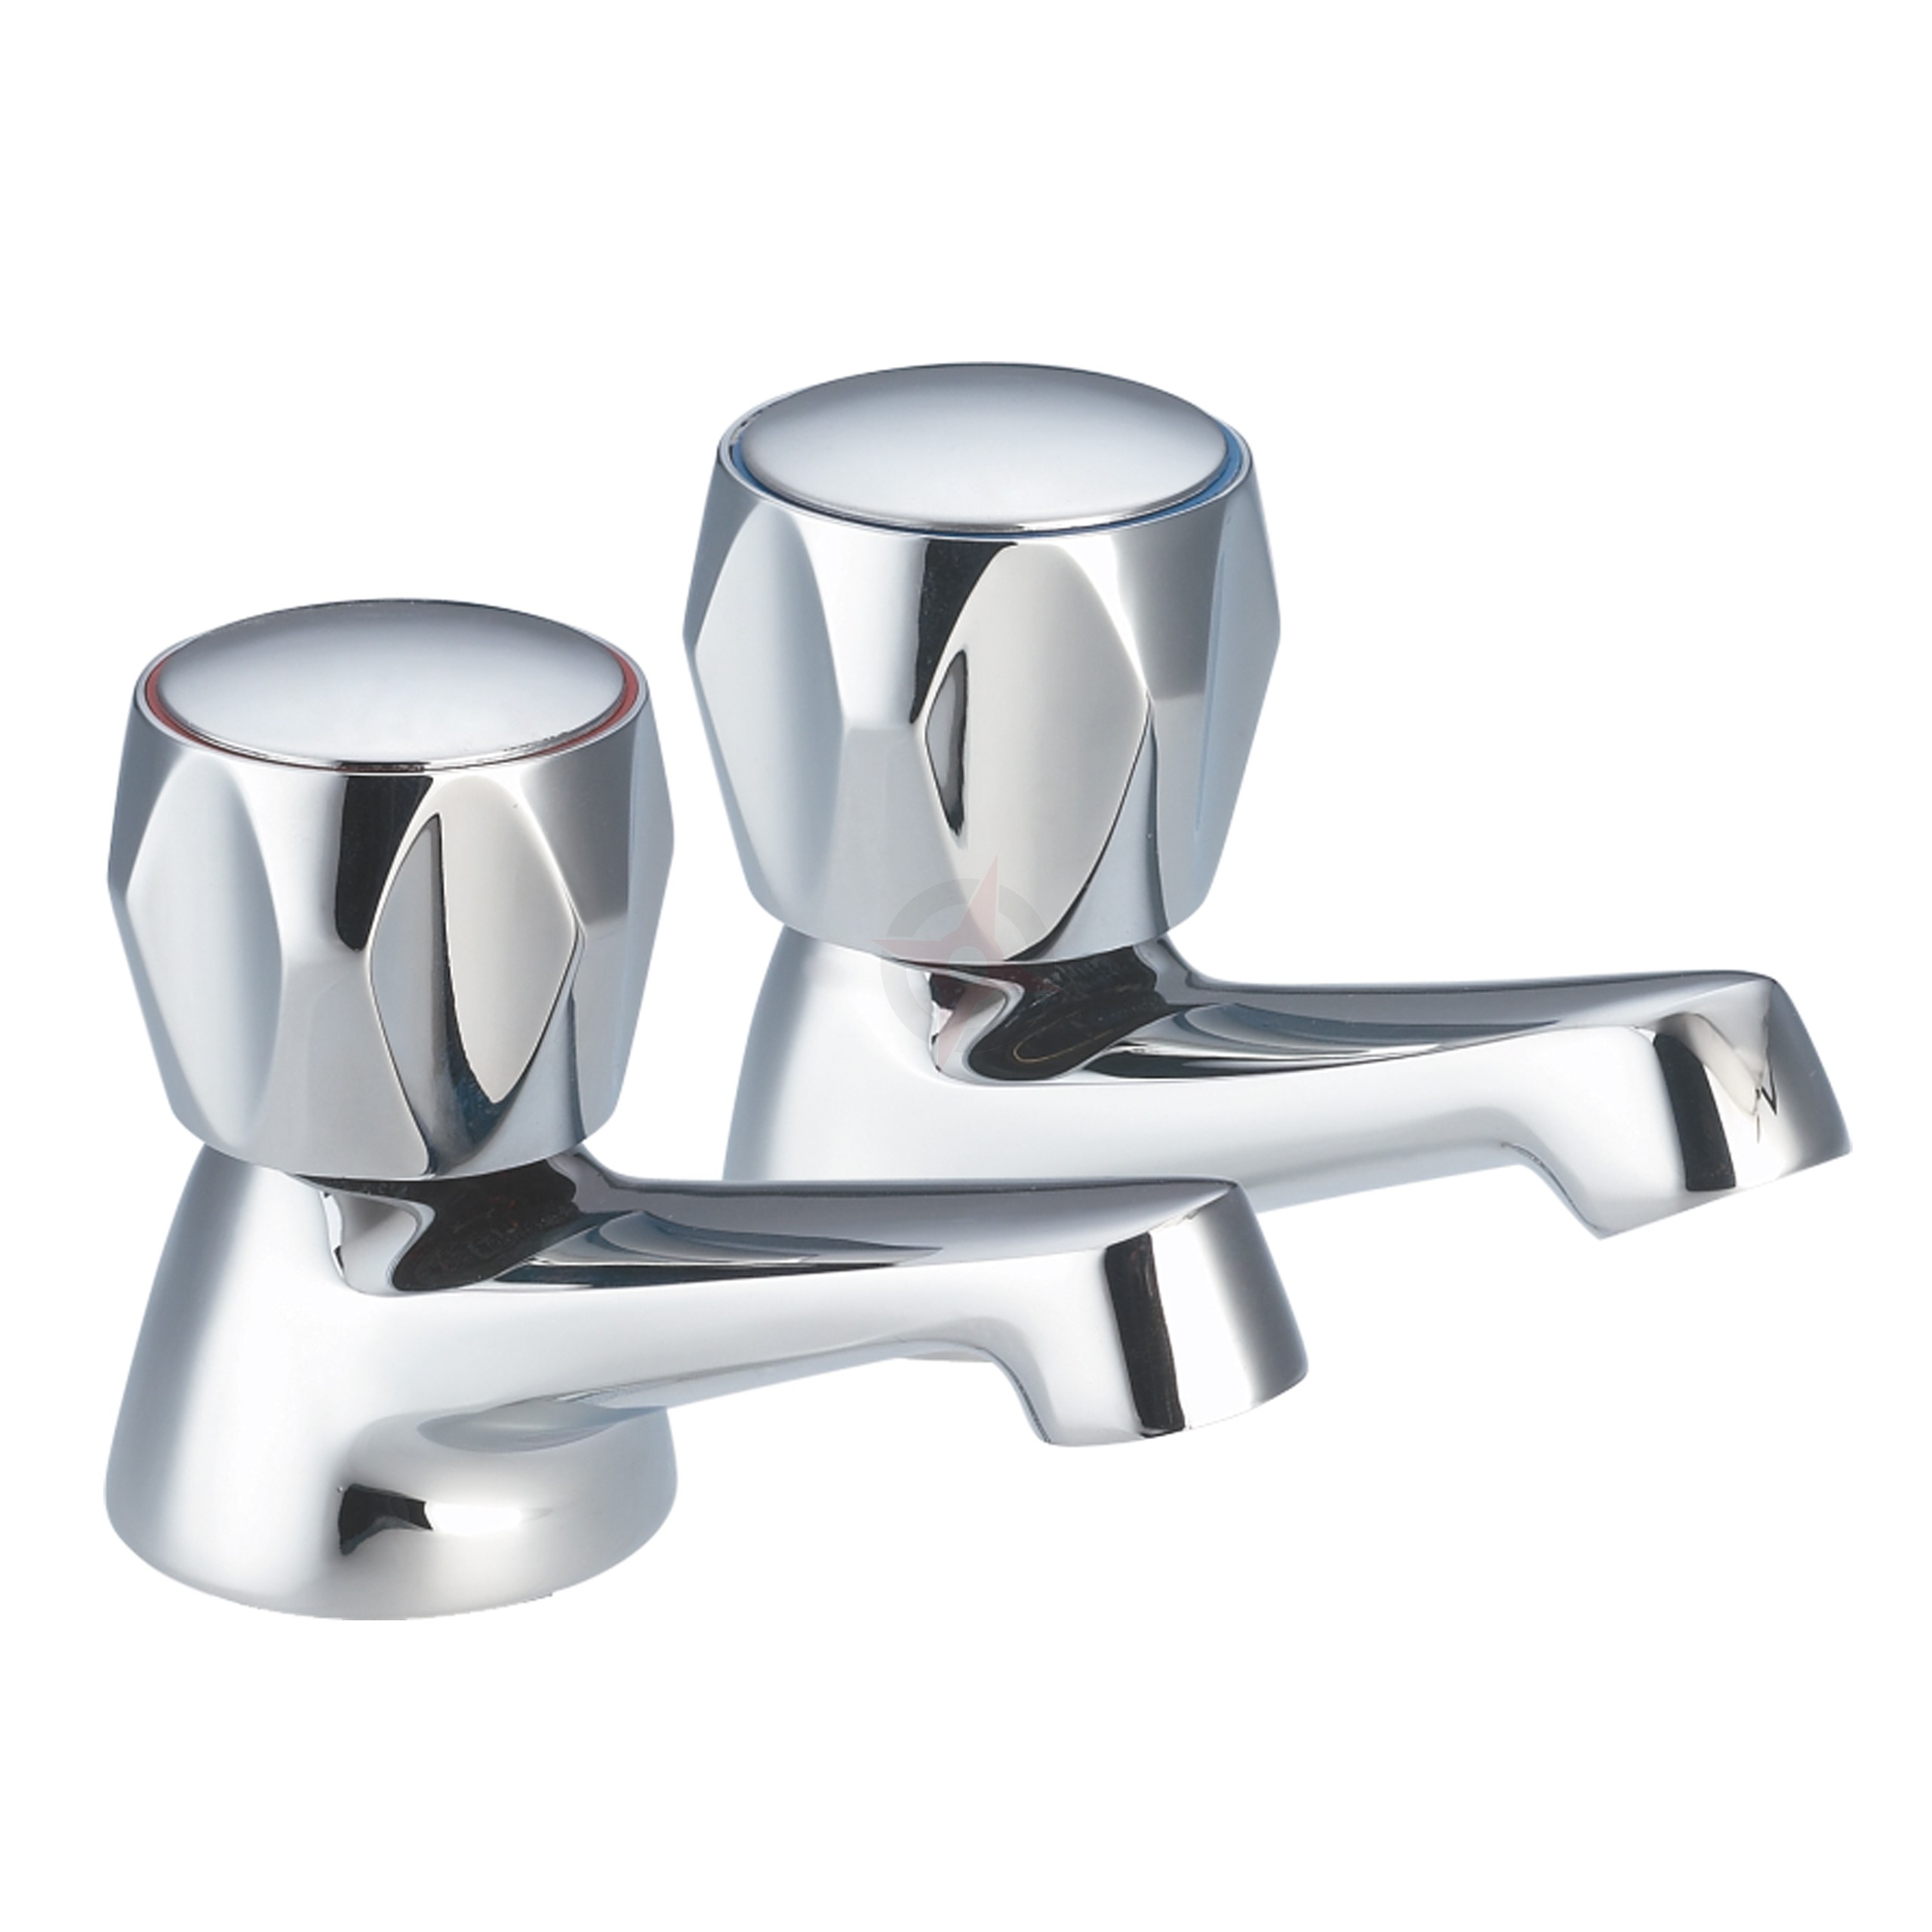 Lavata Contract Basin Taps (Pair)